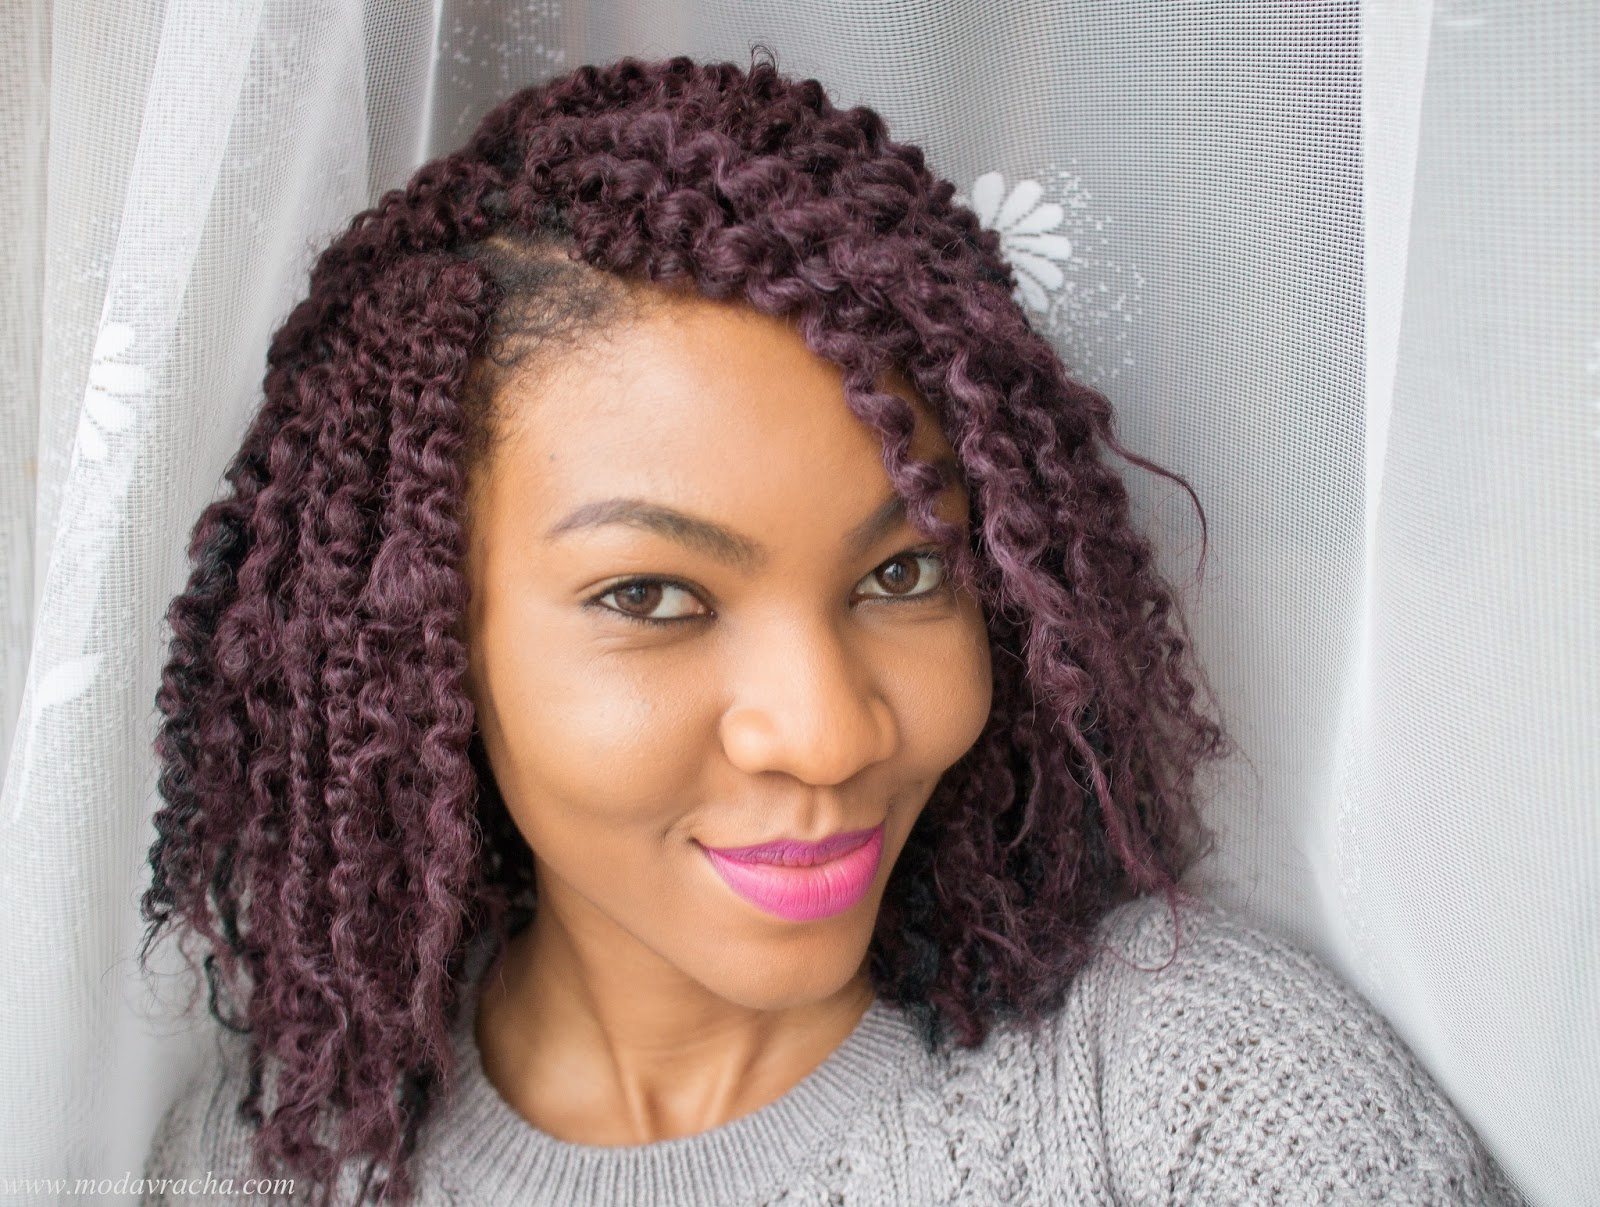 Crochet Hair Styles With Freetress Hair : Modavracha crochet braids hairstyle with kinky bulk hair.